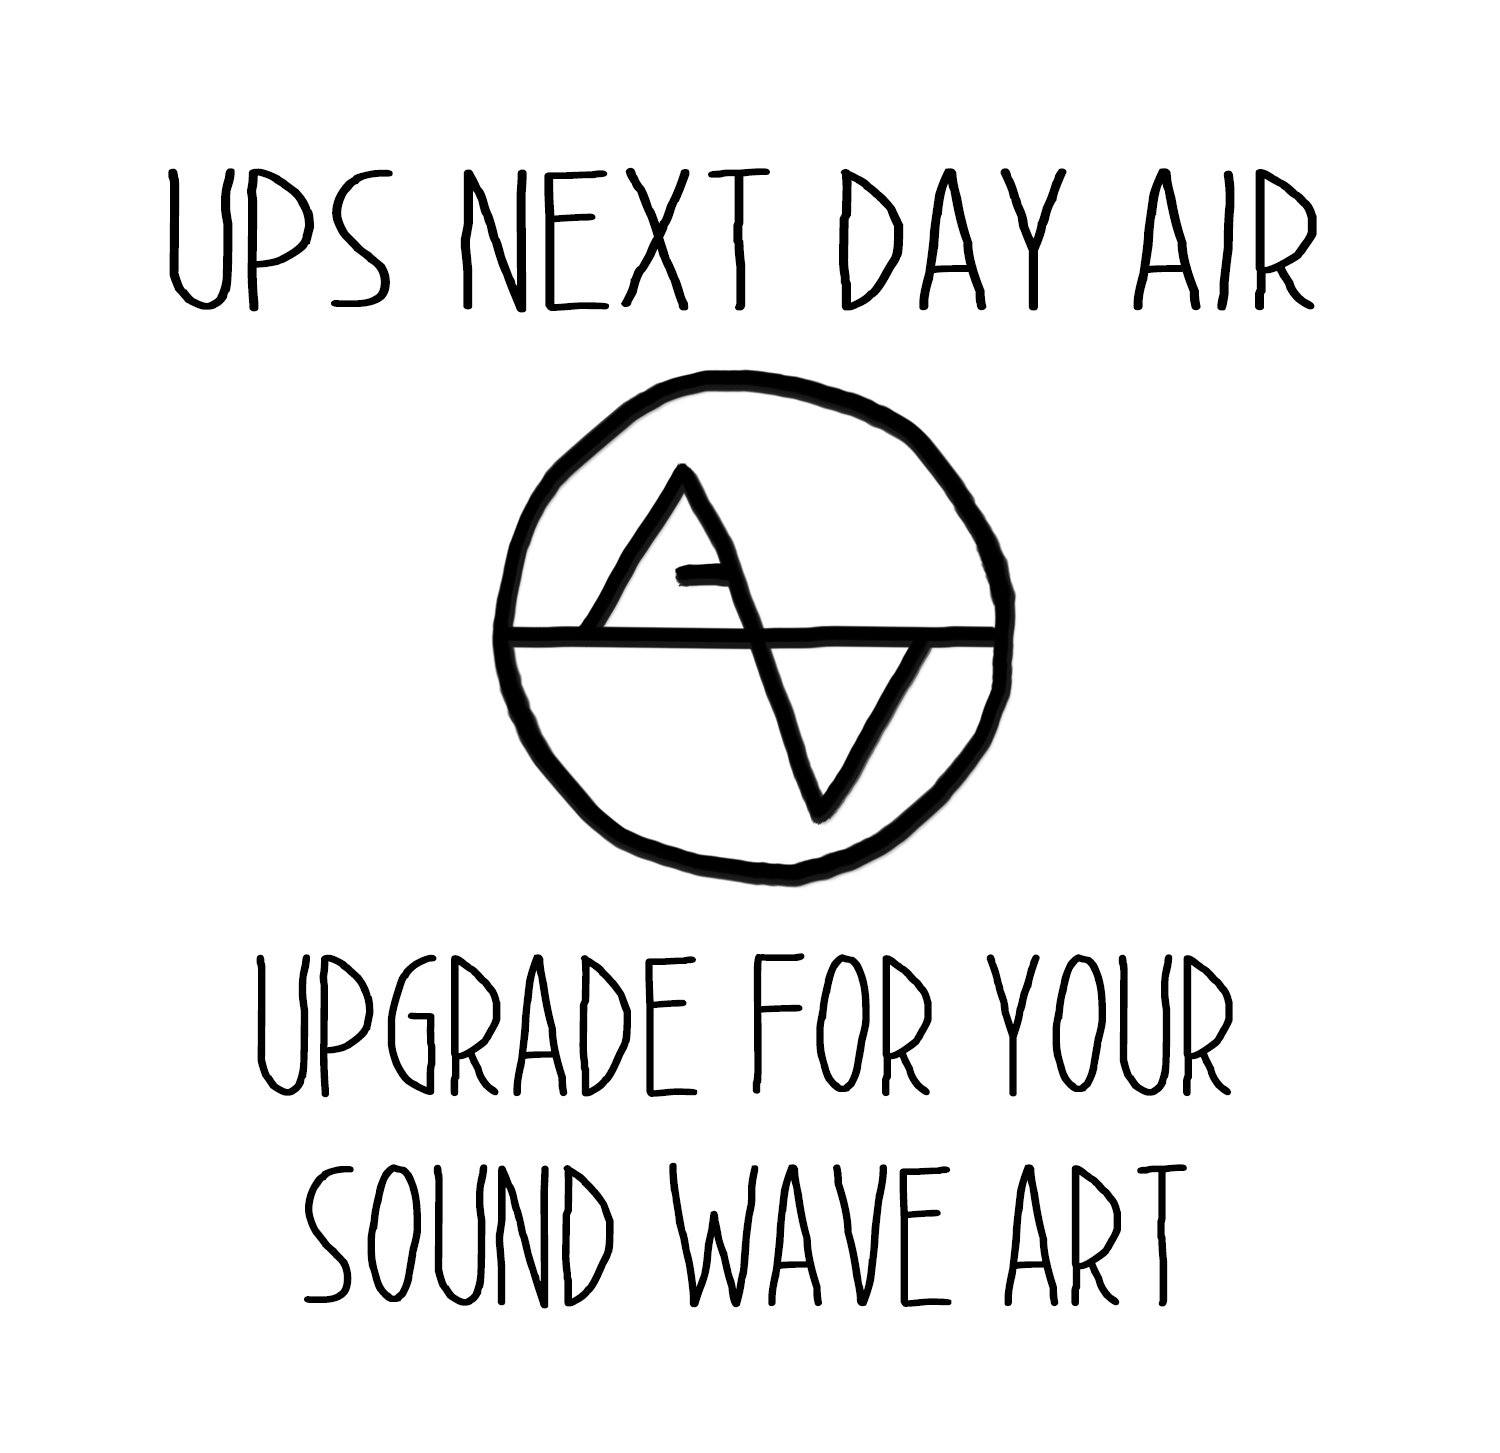 Upgrade Shipping to Next Day Air - Artsy Voiceprint